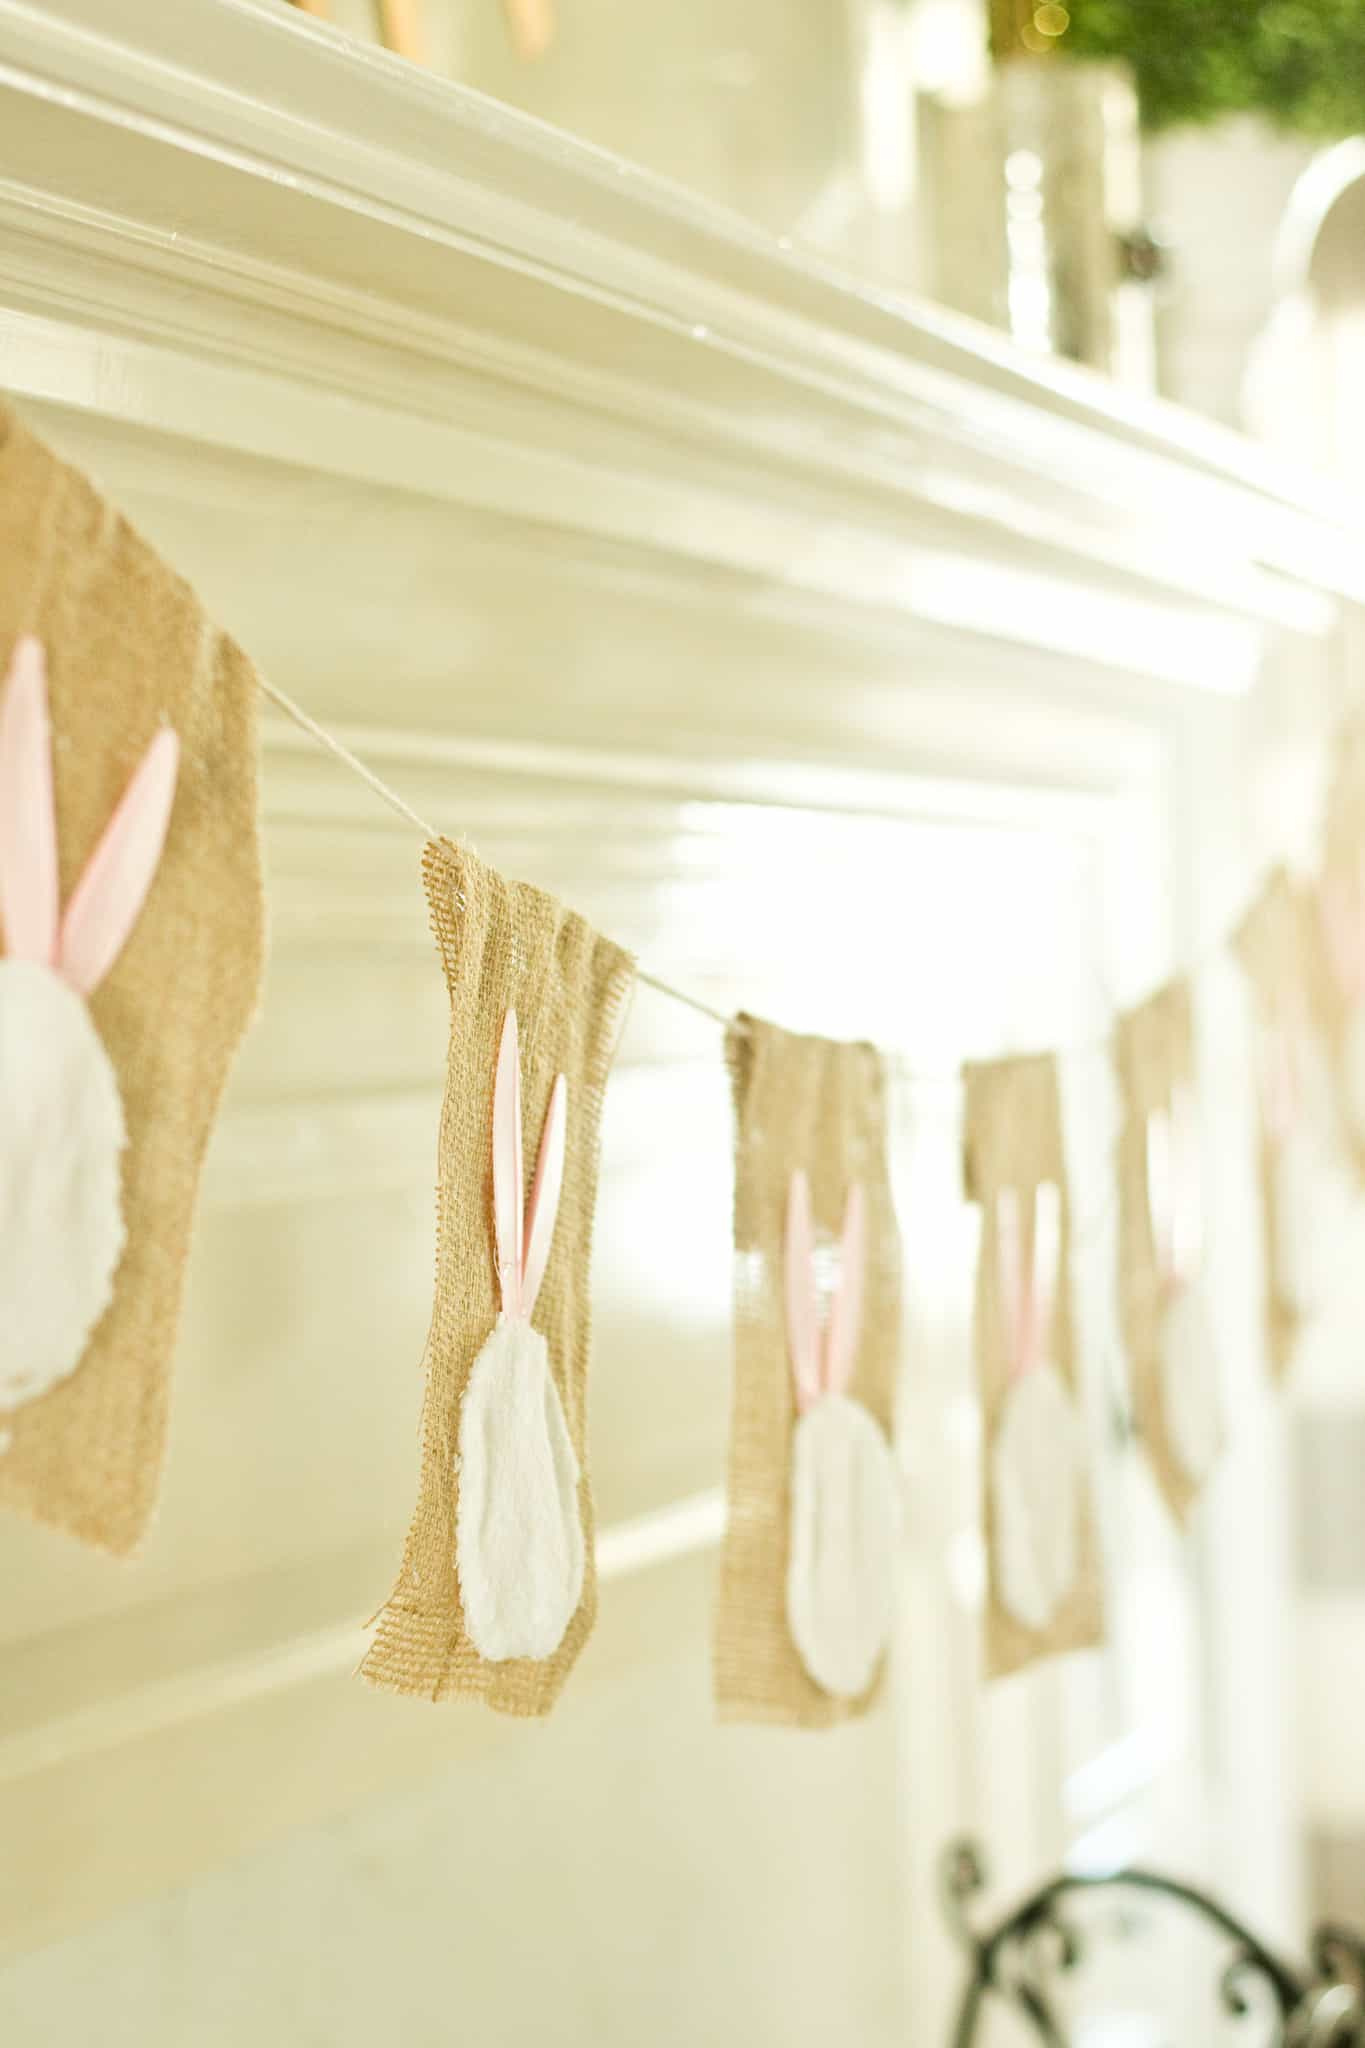 Easter Bunny Garland made from Dollar Store Plastic Knives and Car Cloth